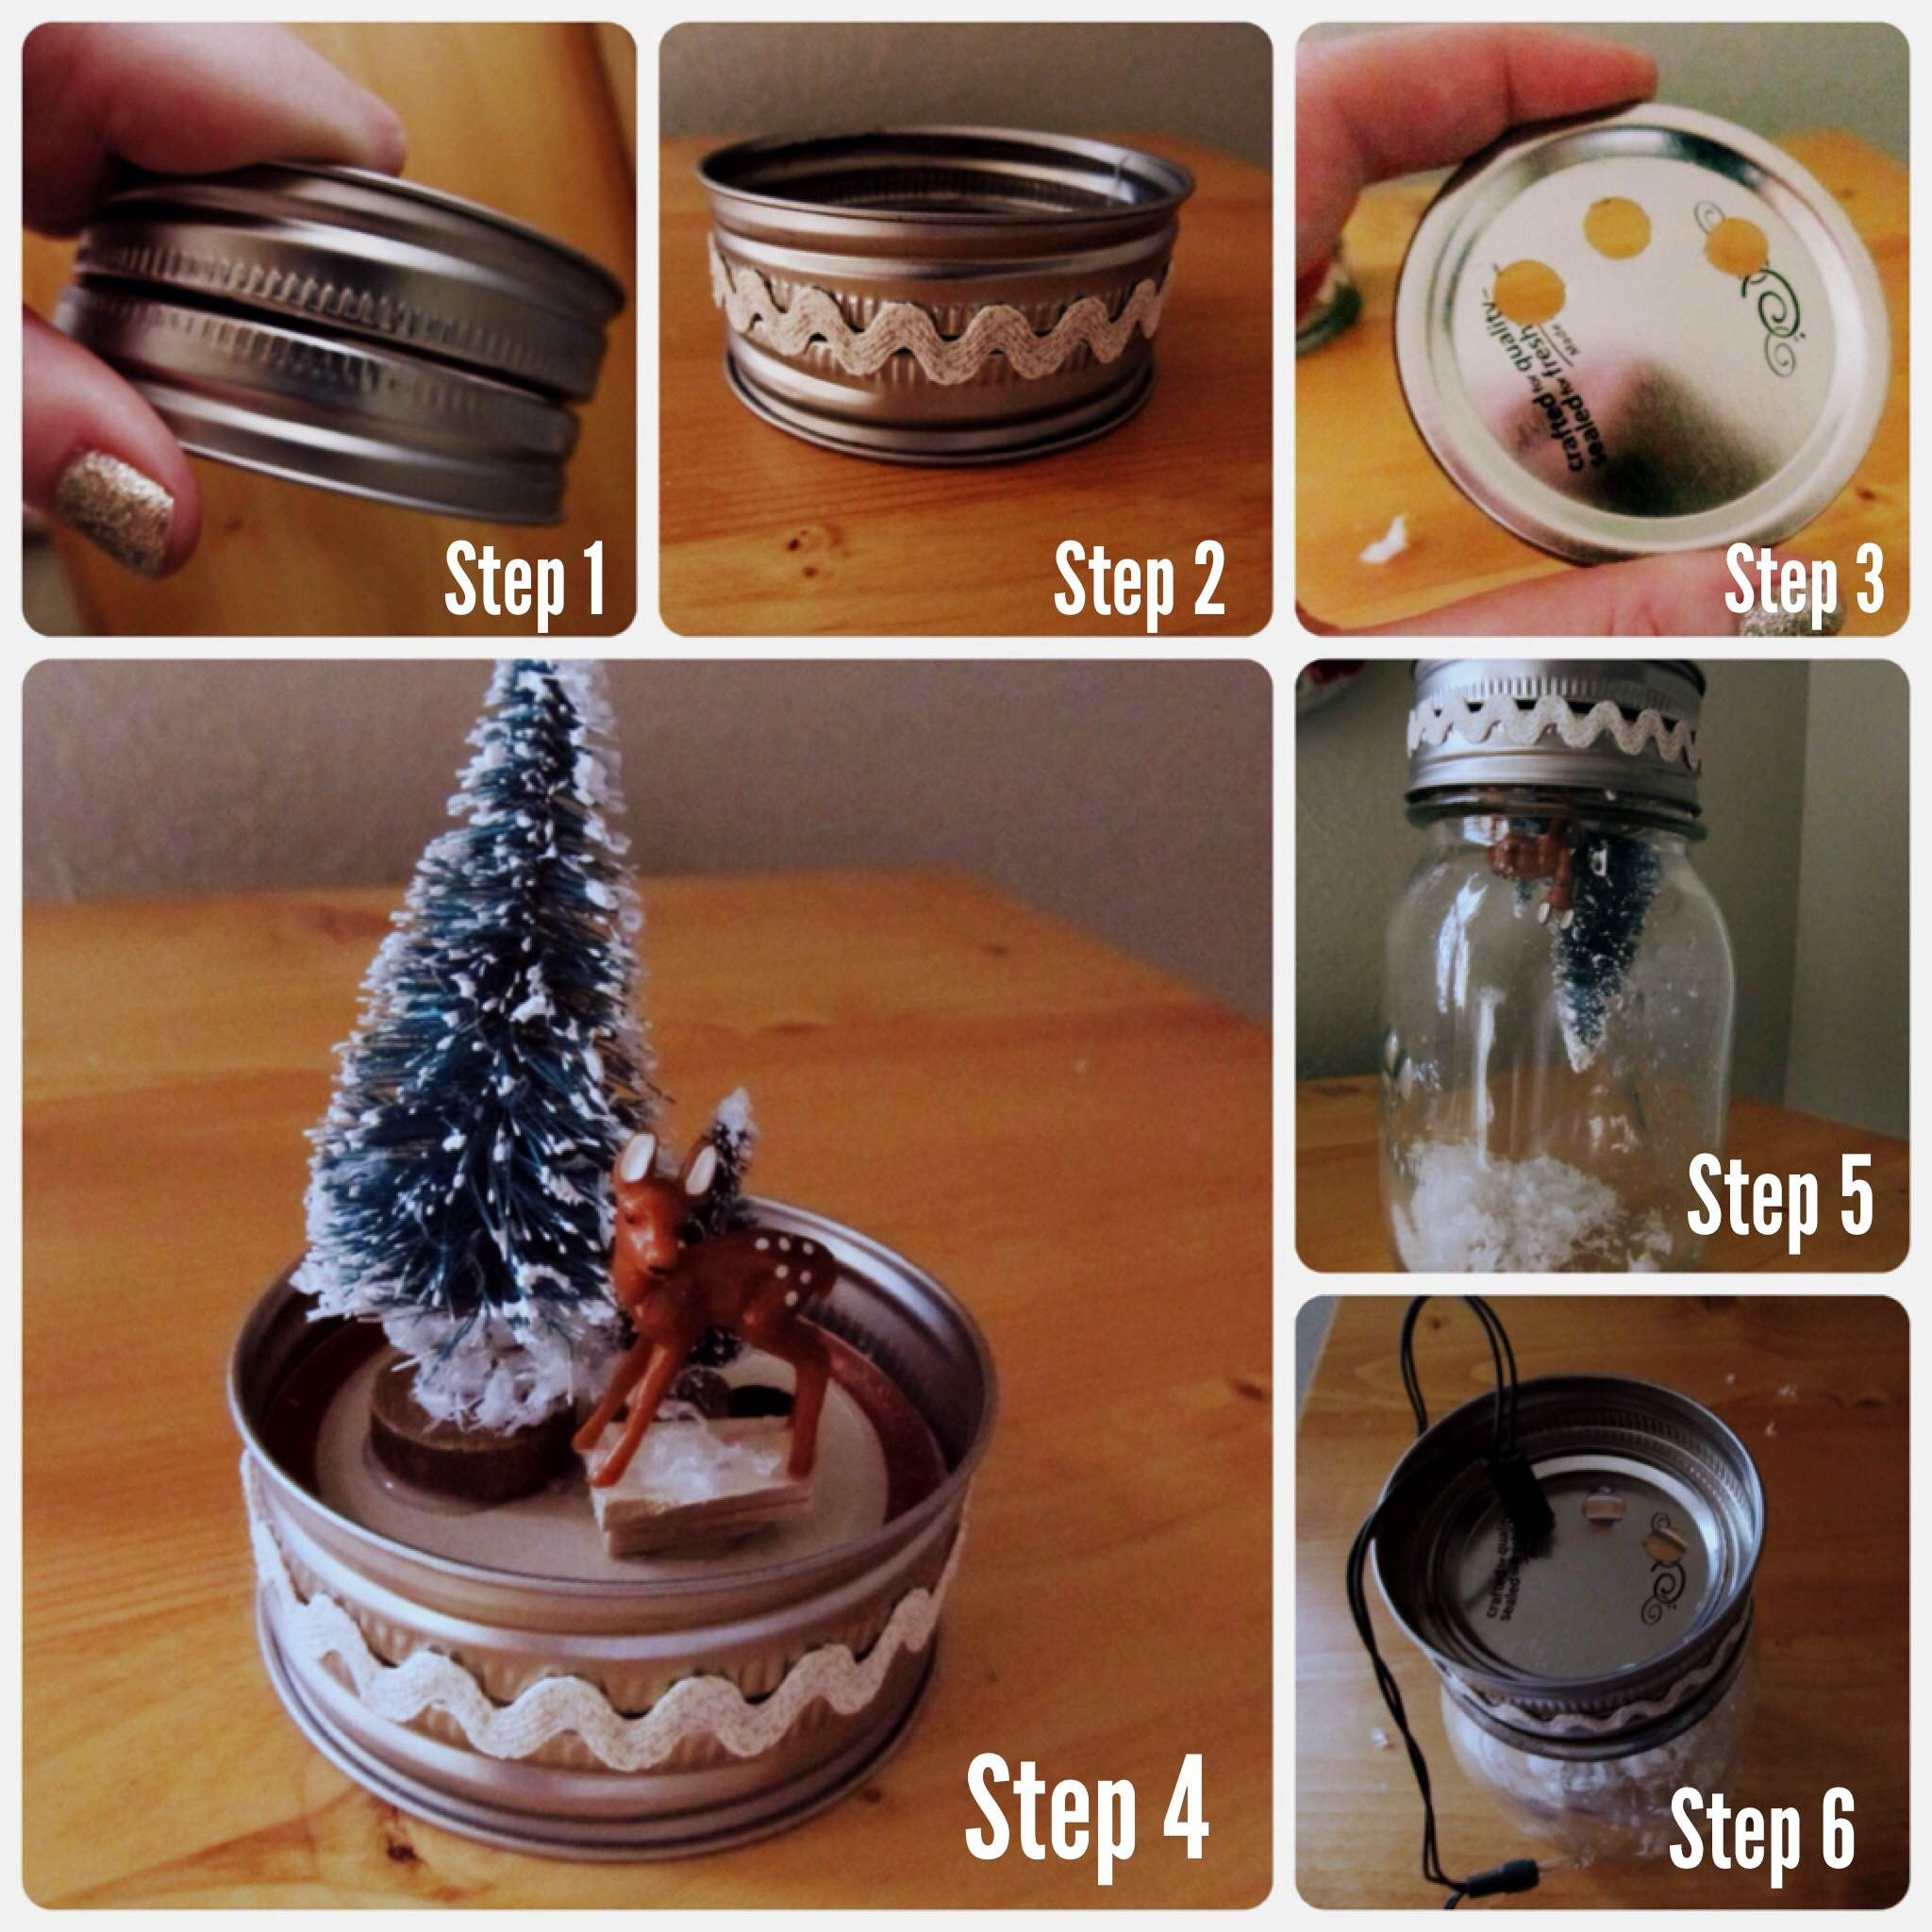 Since its officially november i think its about time we get to since its officially november i think its about time we get to postin about mason jar christmaschristmas diychristmas solutioingenieria Image collections